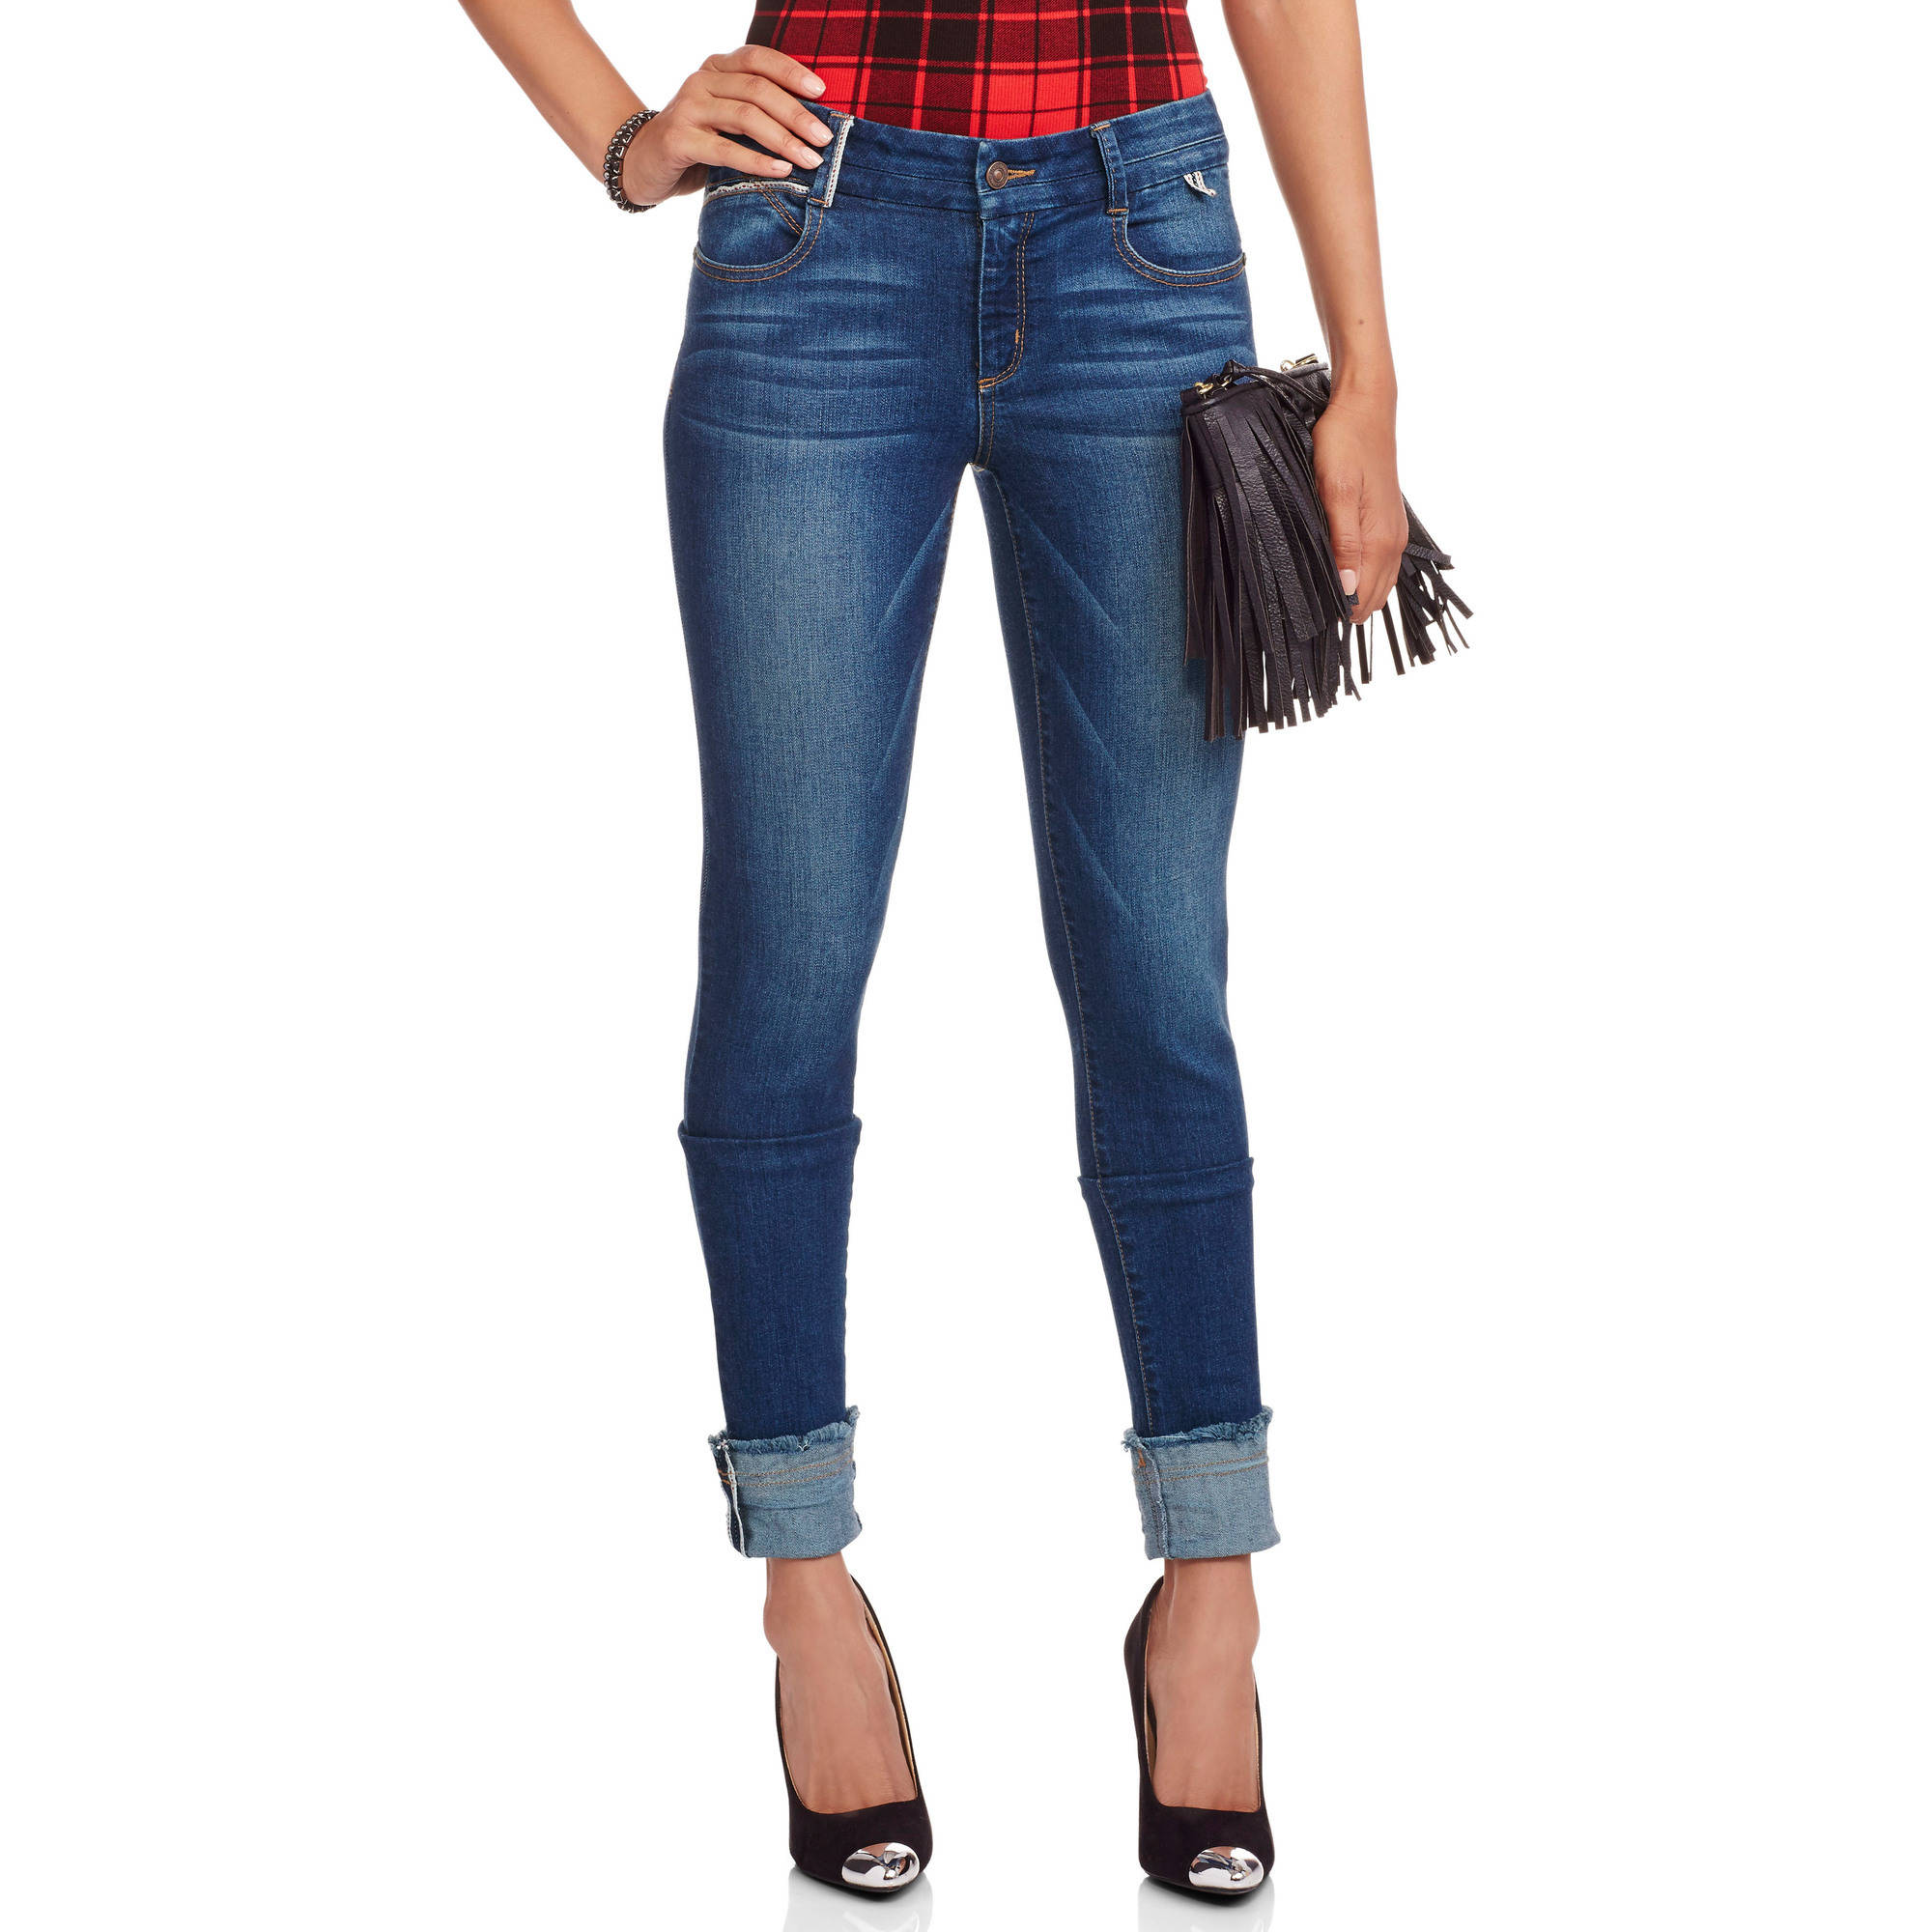 Juniors' Contemporary Cuffed Skinny Jeans